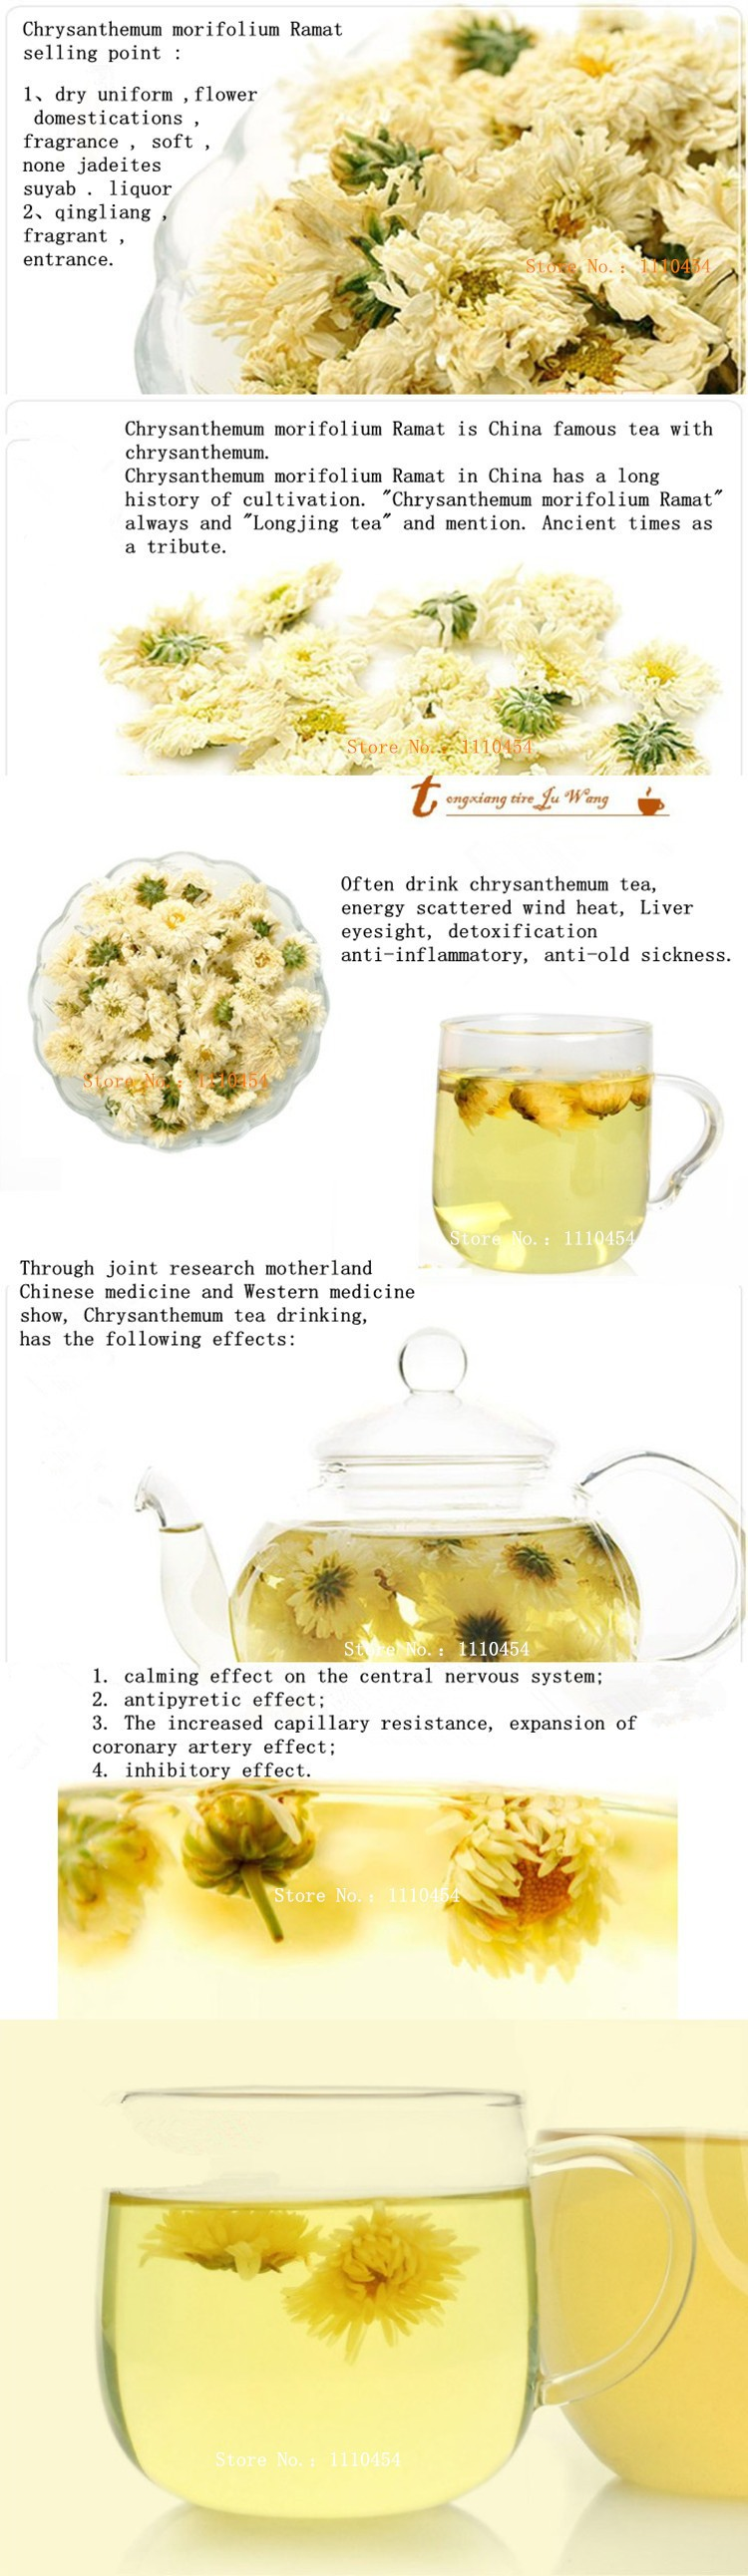 Top-Grade High Quality Original Chinese Chrysanthemum Tea Chrysanthemum morifolium Ramat tinned Flower\Scented Tea